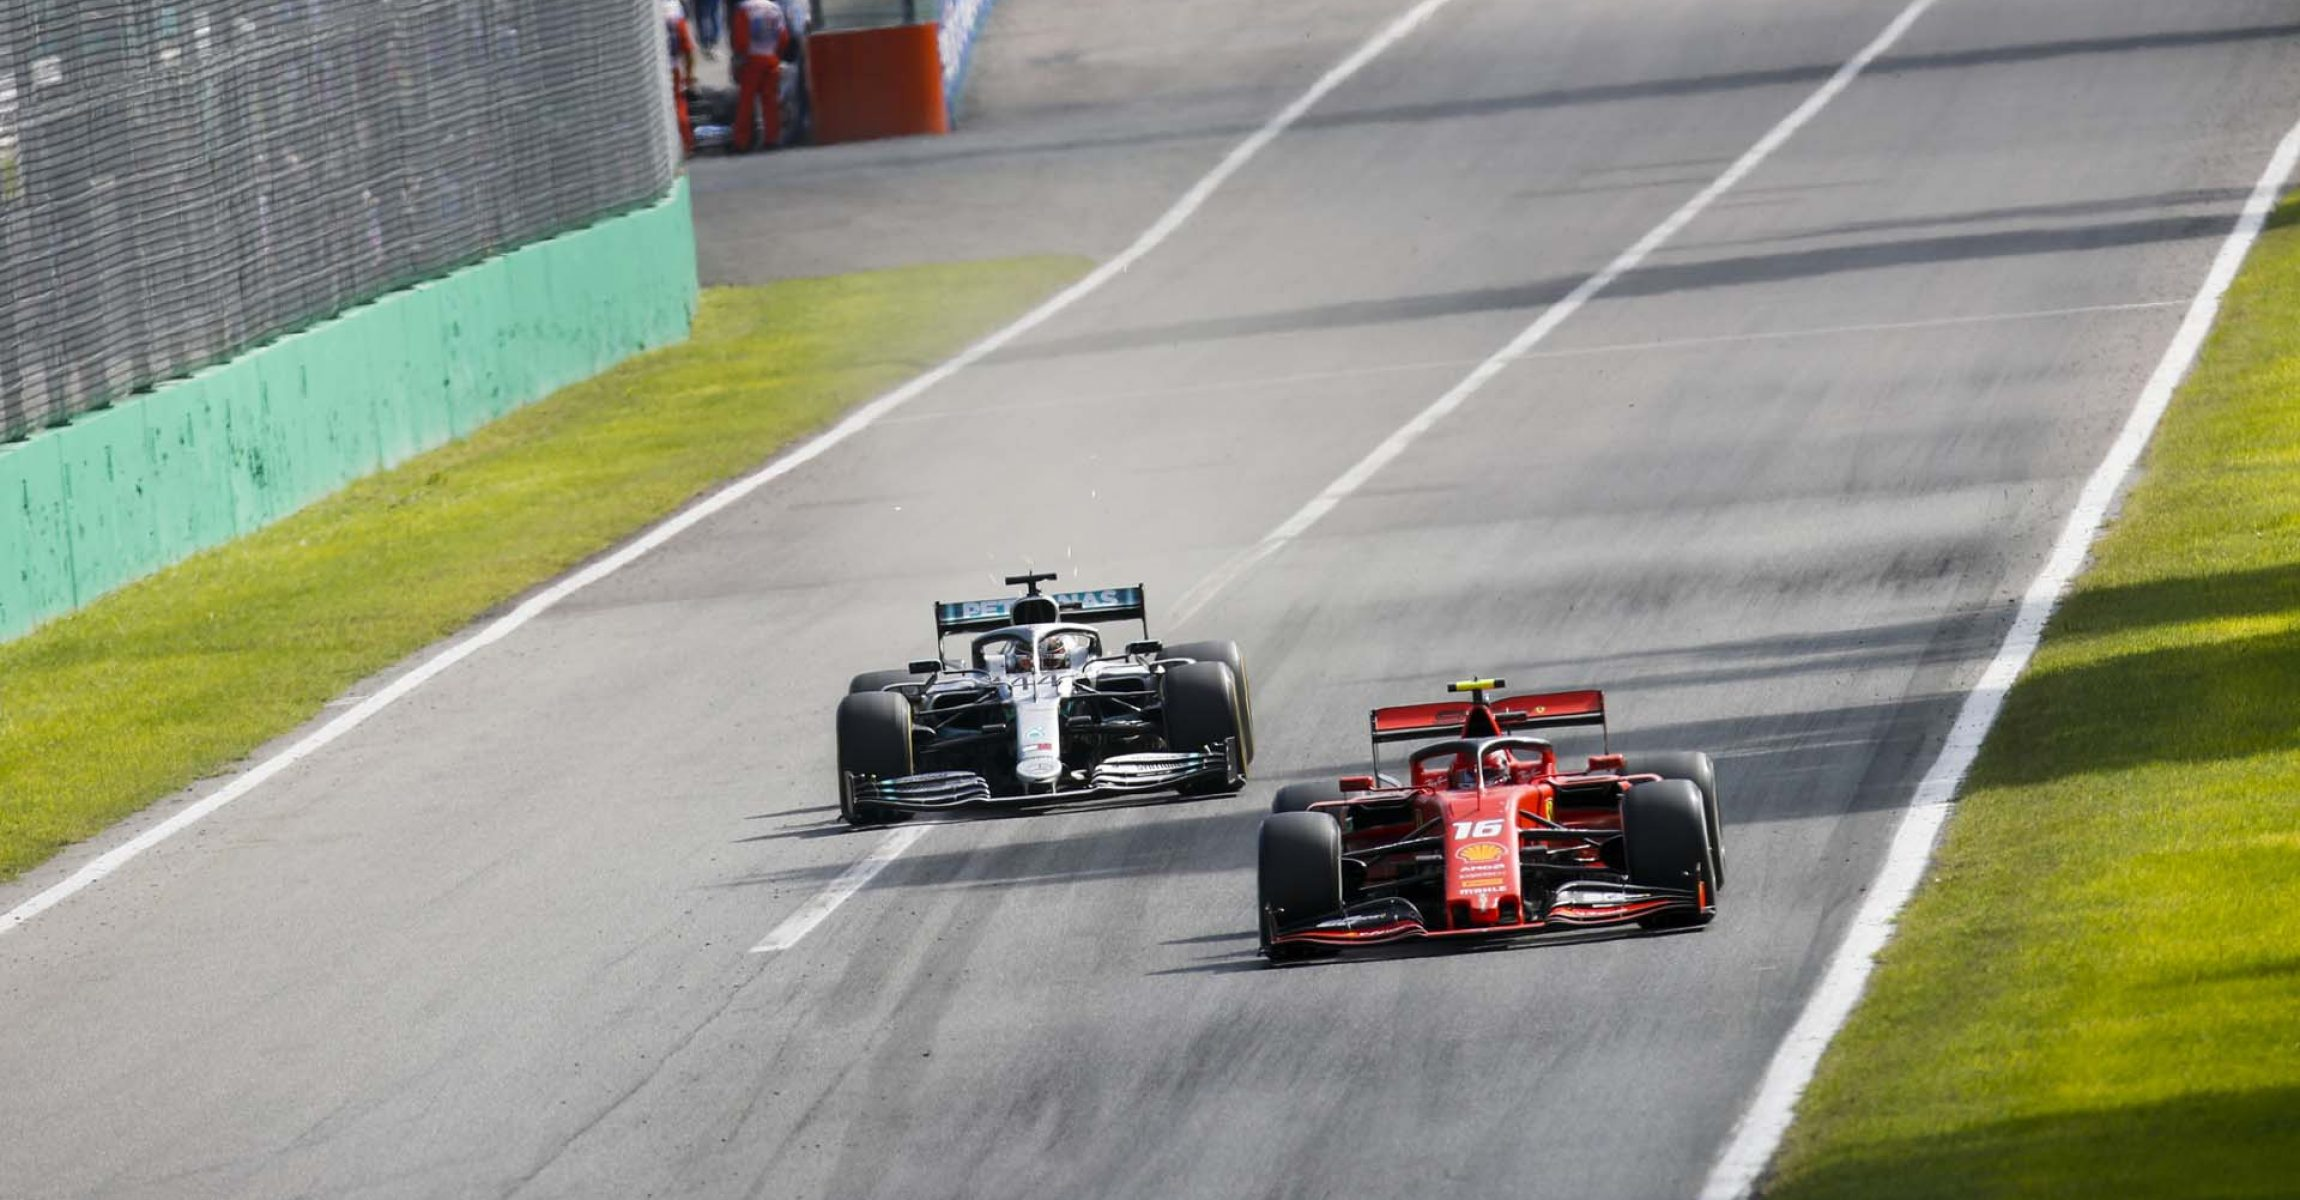 AUTODROMO NAZIONALE MONZA, ITALY - SEPTEMBER 08: Charles Leclerc, Ferrari SF90 and Lewis Hamilton, Mercedes AMG F1 W10 battle during the Italian GP at Autodromo Nazionale Monza on September 08, 2019 in Autodromo Nazionale Monza, Italy. (Photo by Joe Portlock / LAT Images)